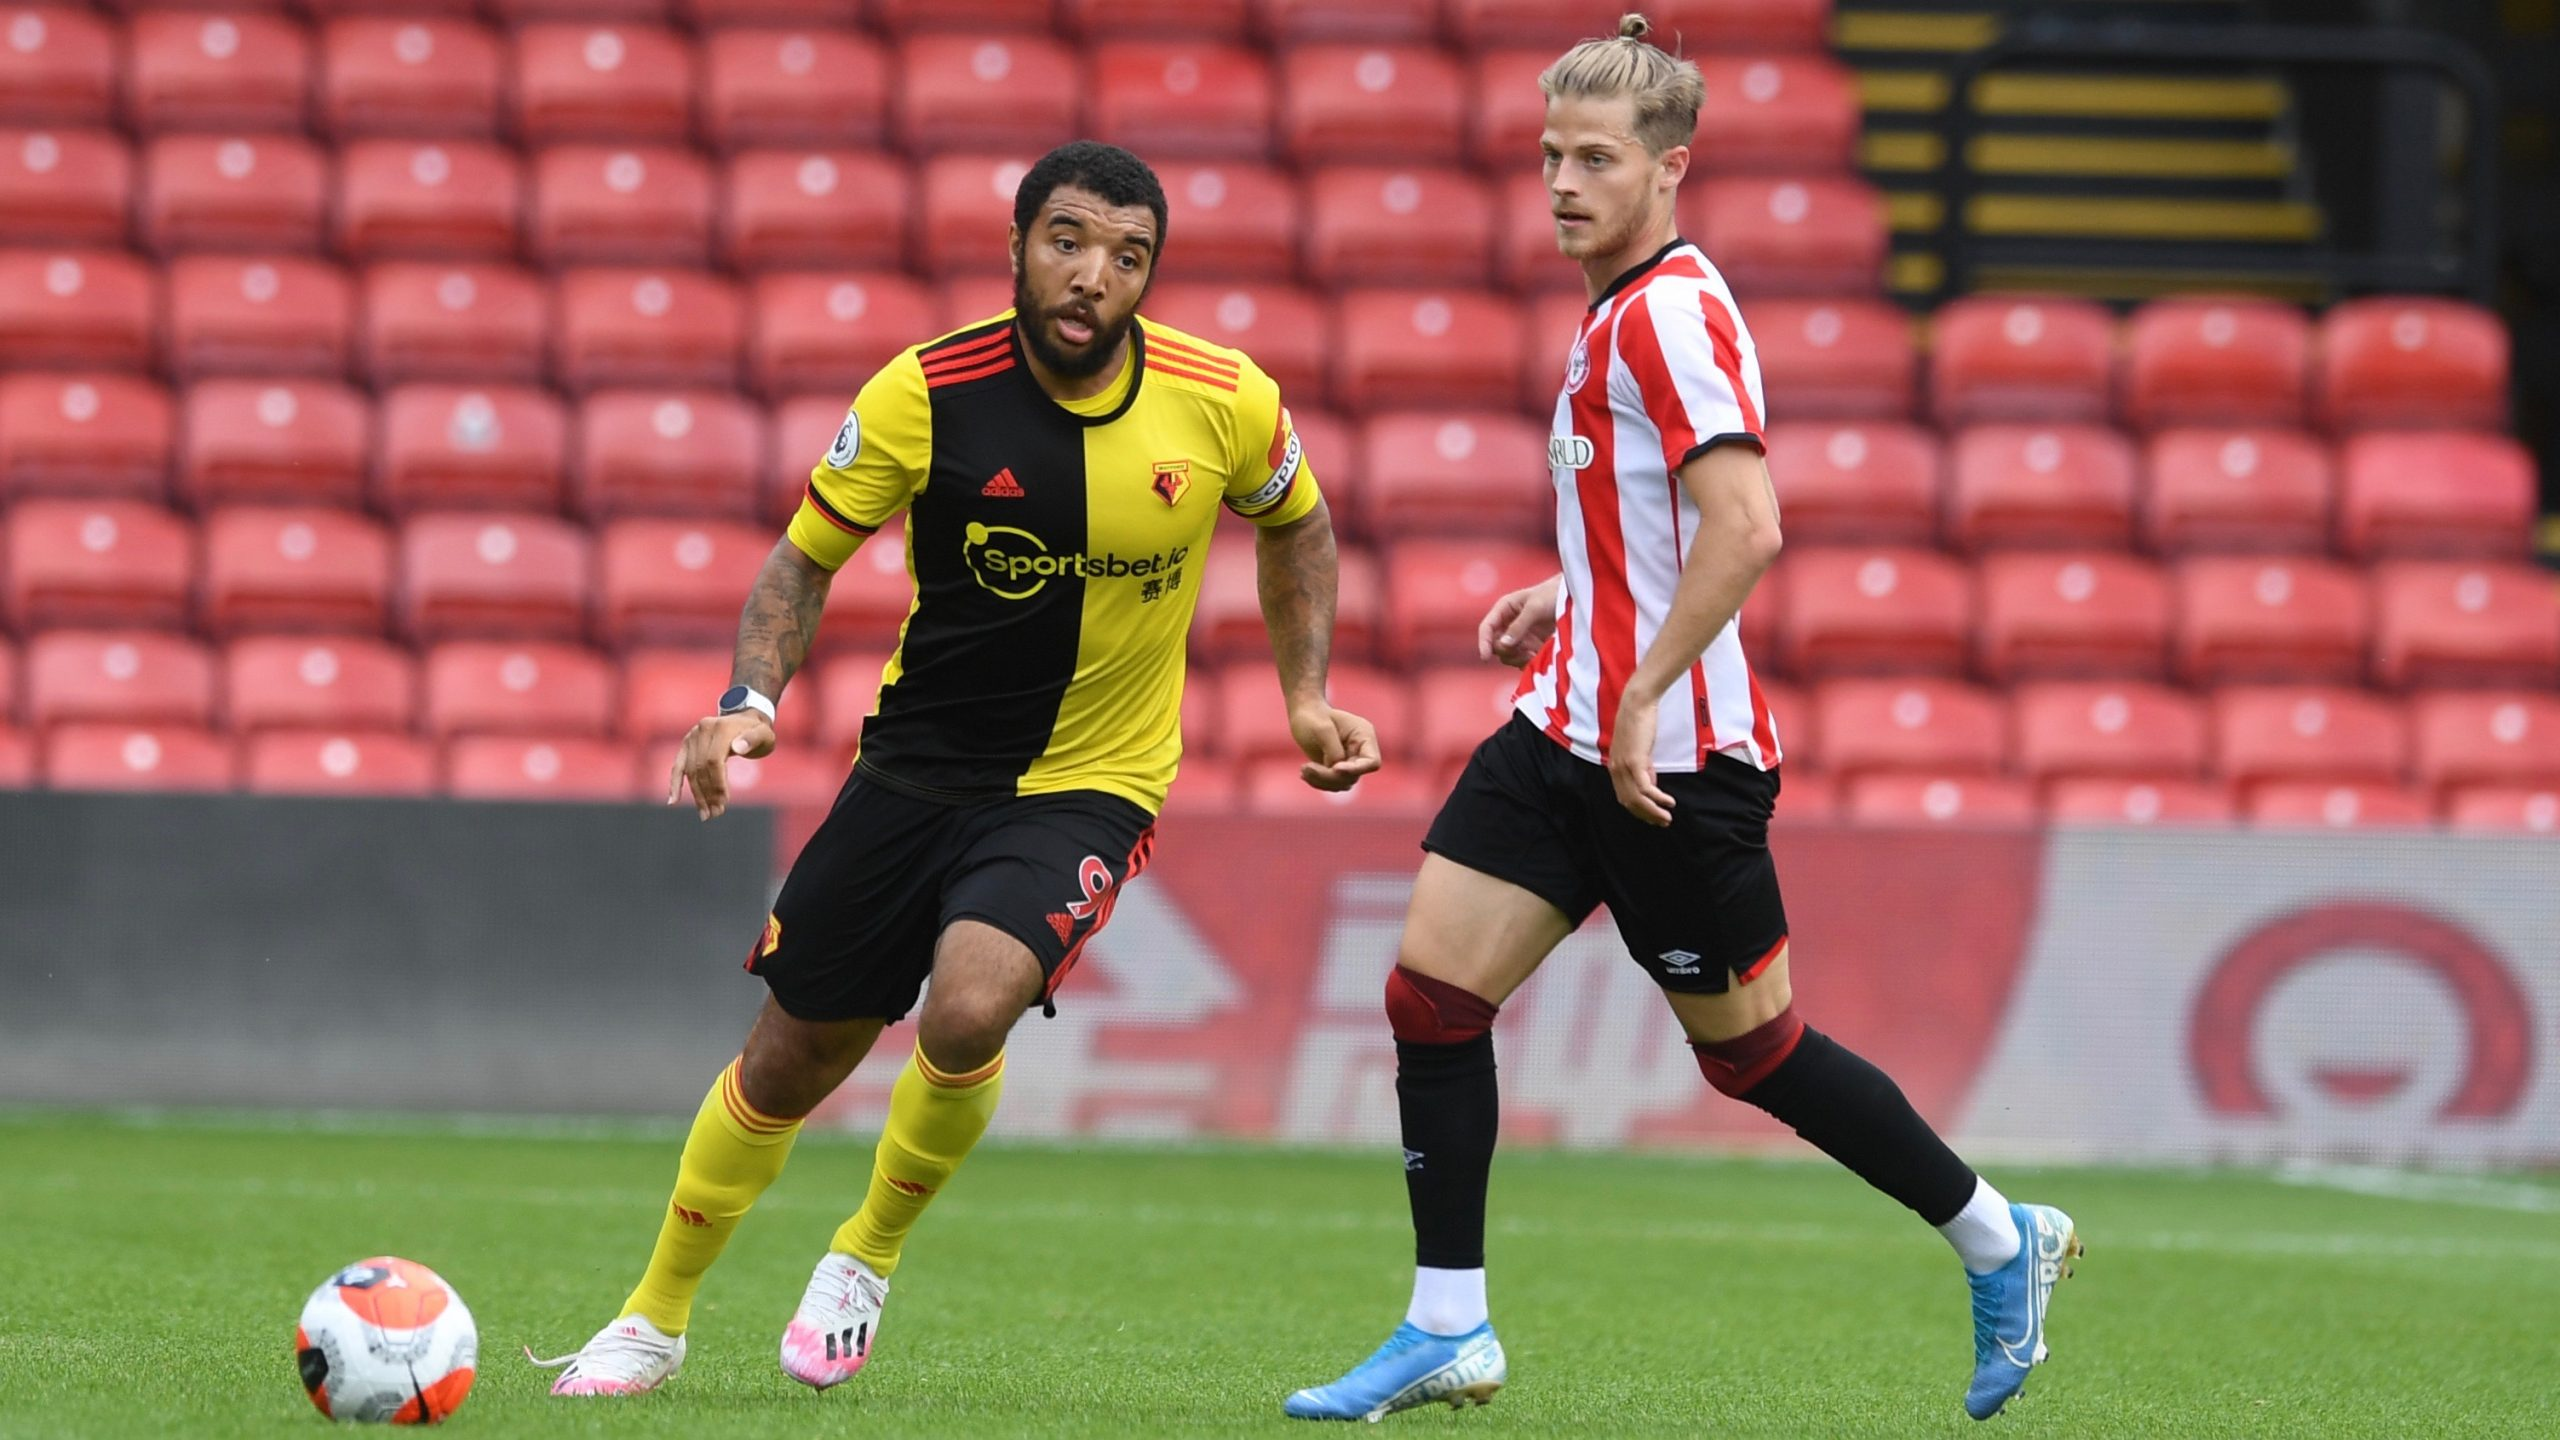 Dele-Bashiru  In Action  As Watford Pip  Brentford 2-0 In Friendly